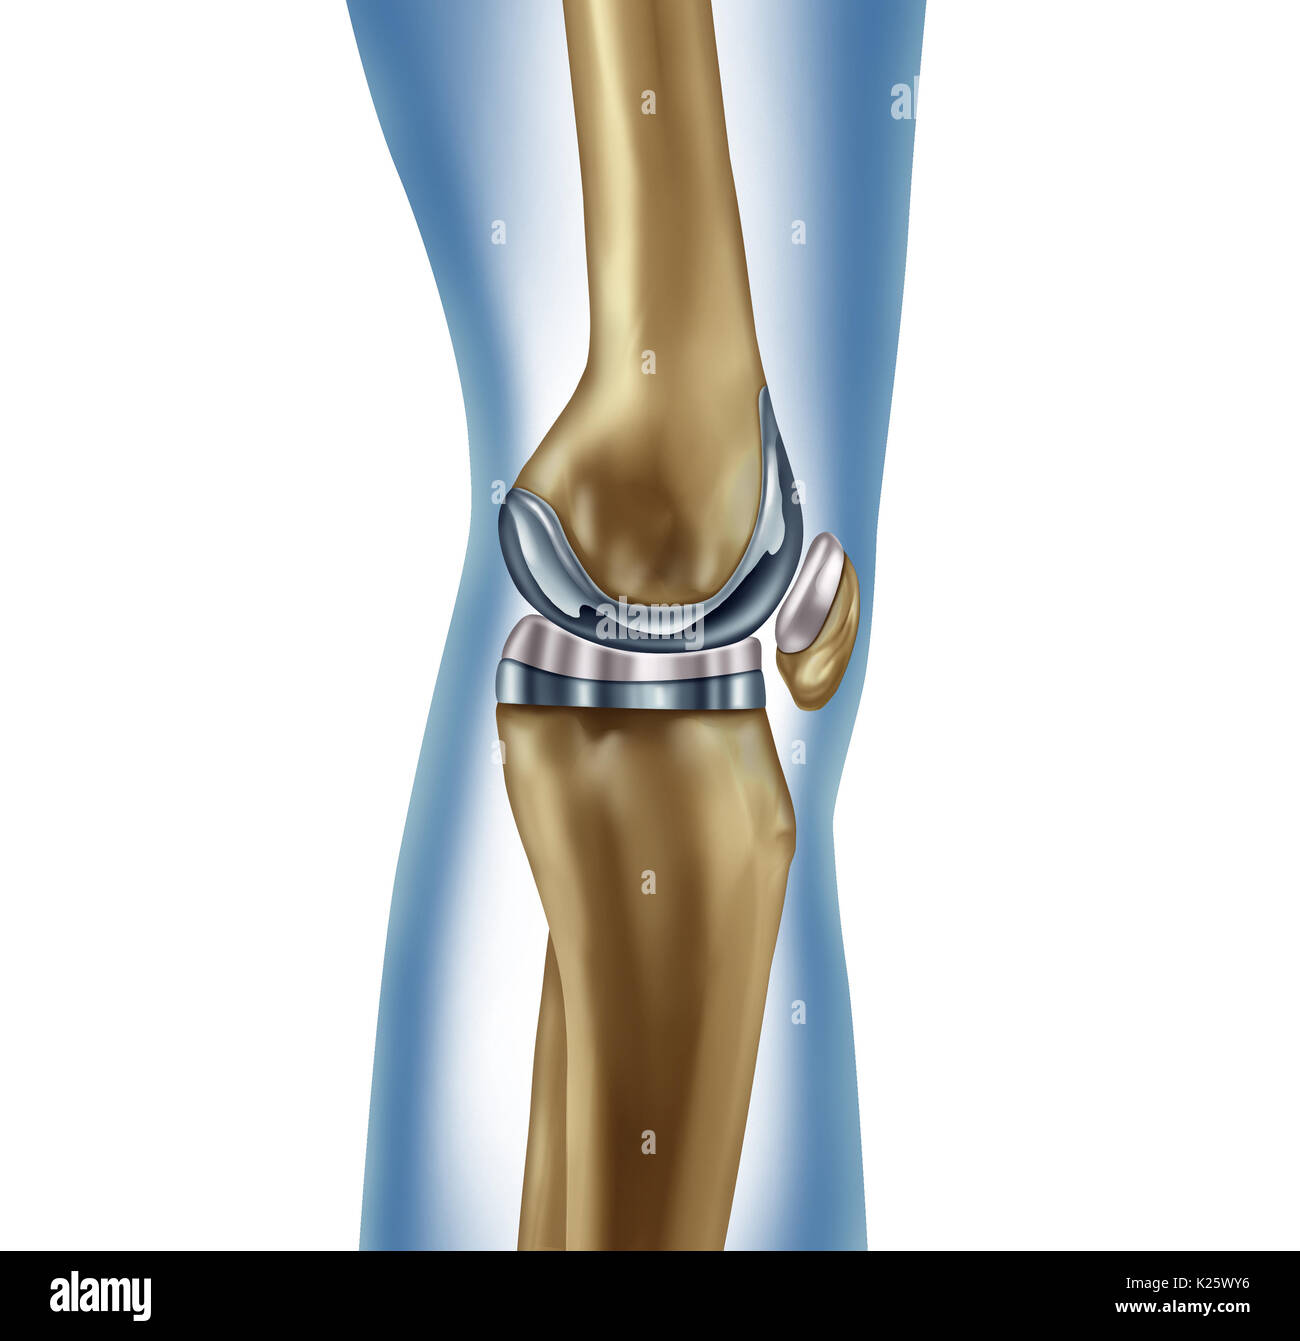 Replacement knee implant medical concept as a human leg anatomy ...